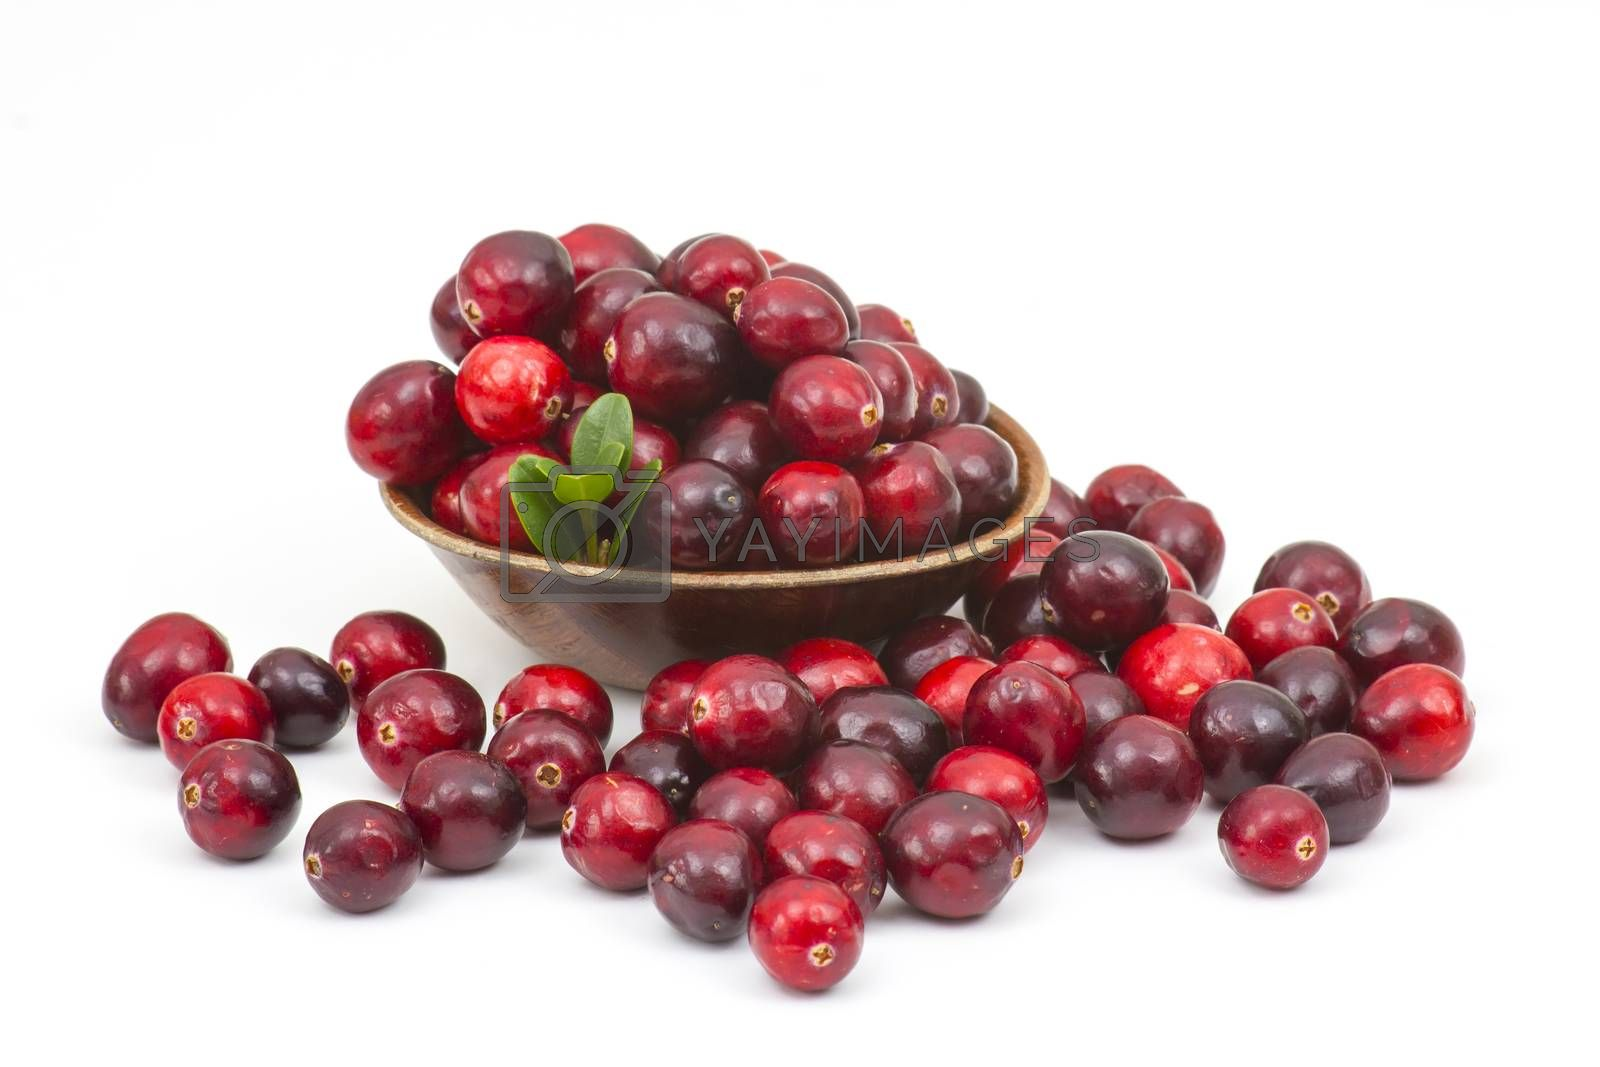 Cranberries in wooden bowl on white background. by miradrozdowski